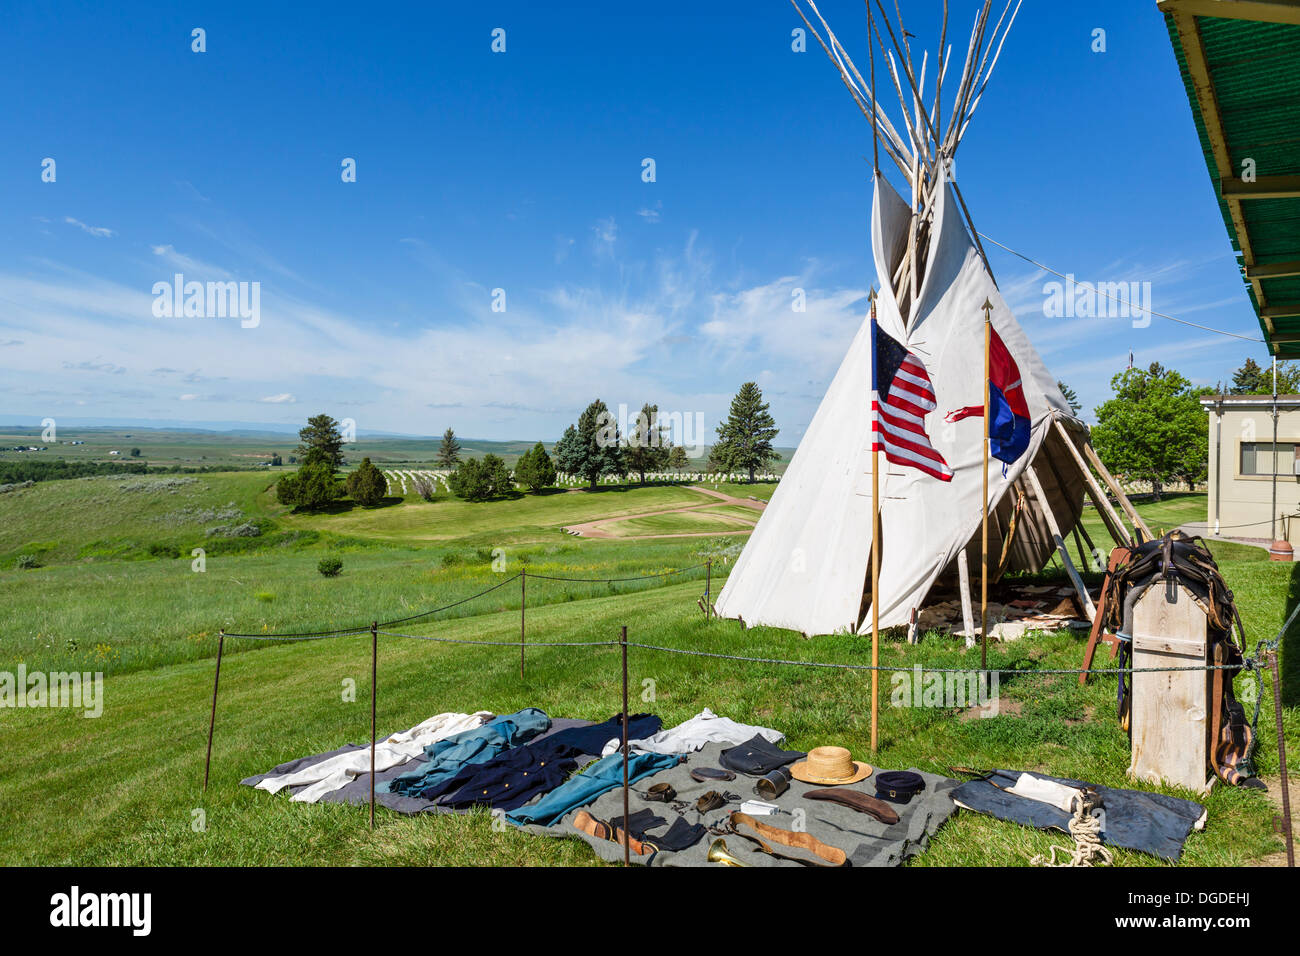 Soldier's kit and Indian Tipi outside the Visitor Center, Little Bighorn Battlefield National Monument, Montana, USA - Stock Image